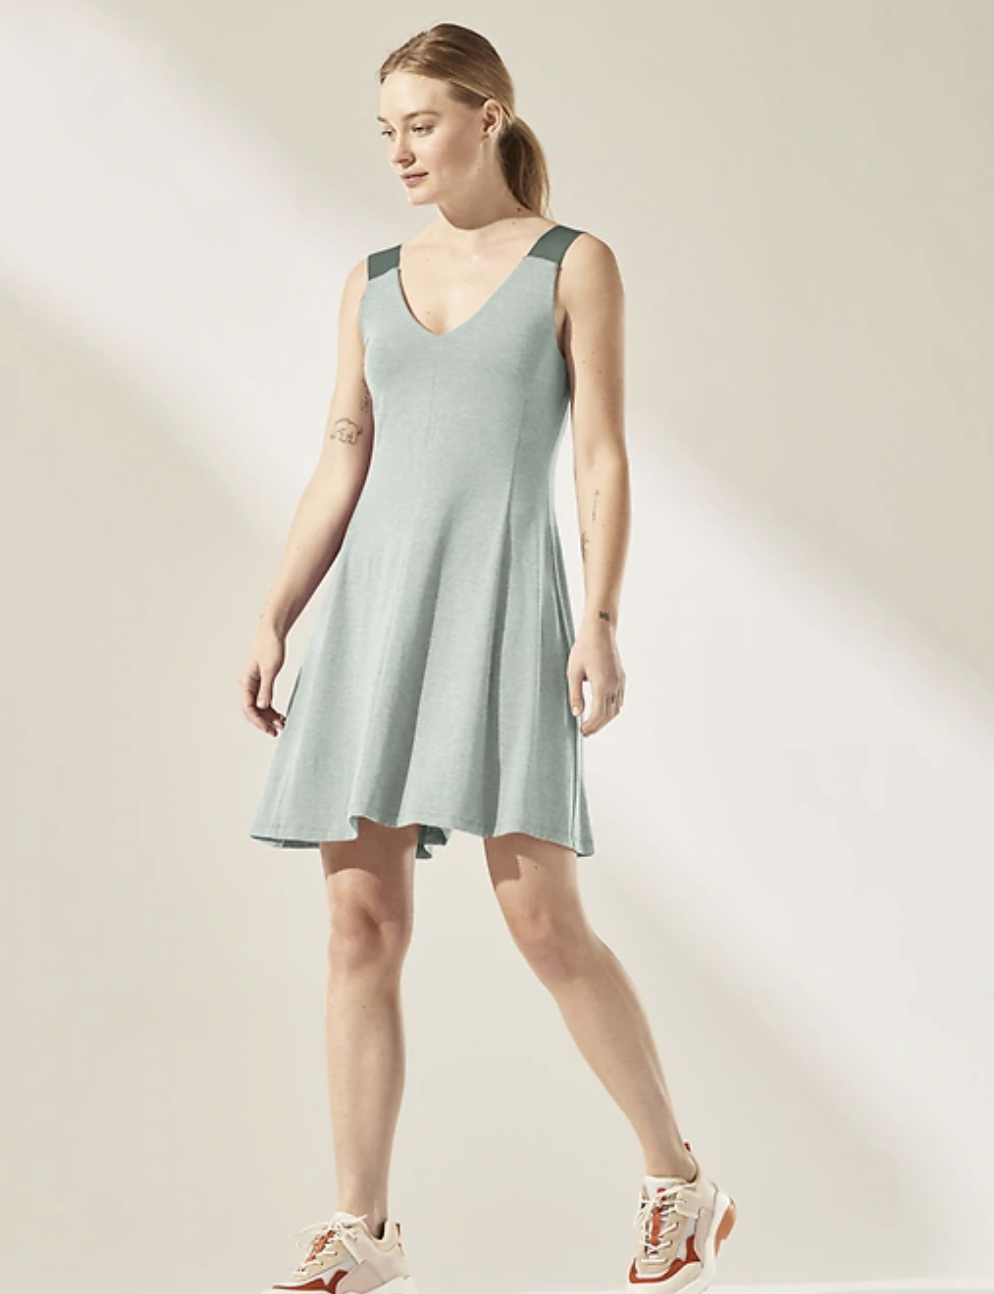 the dress in green heather